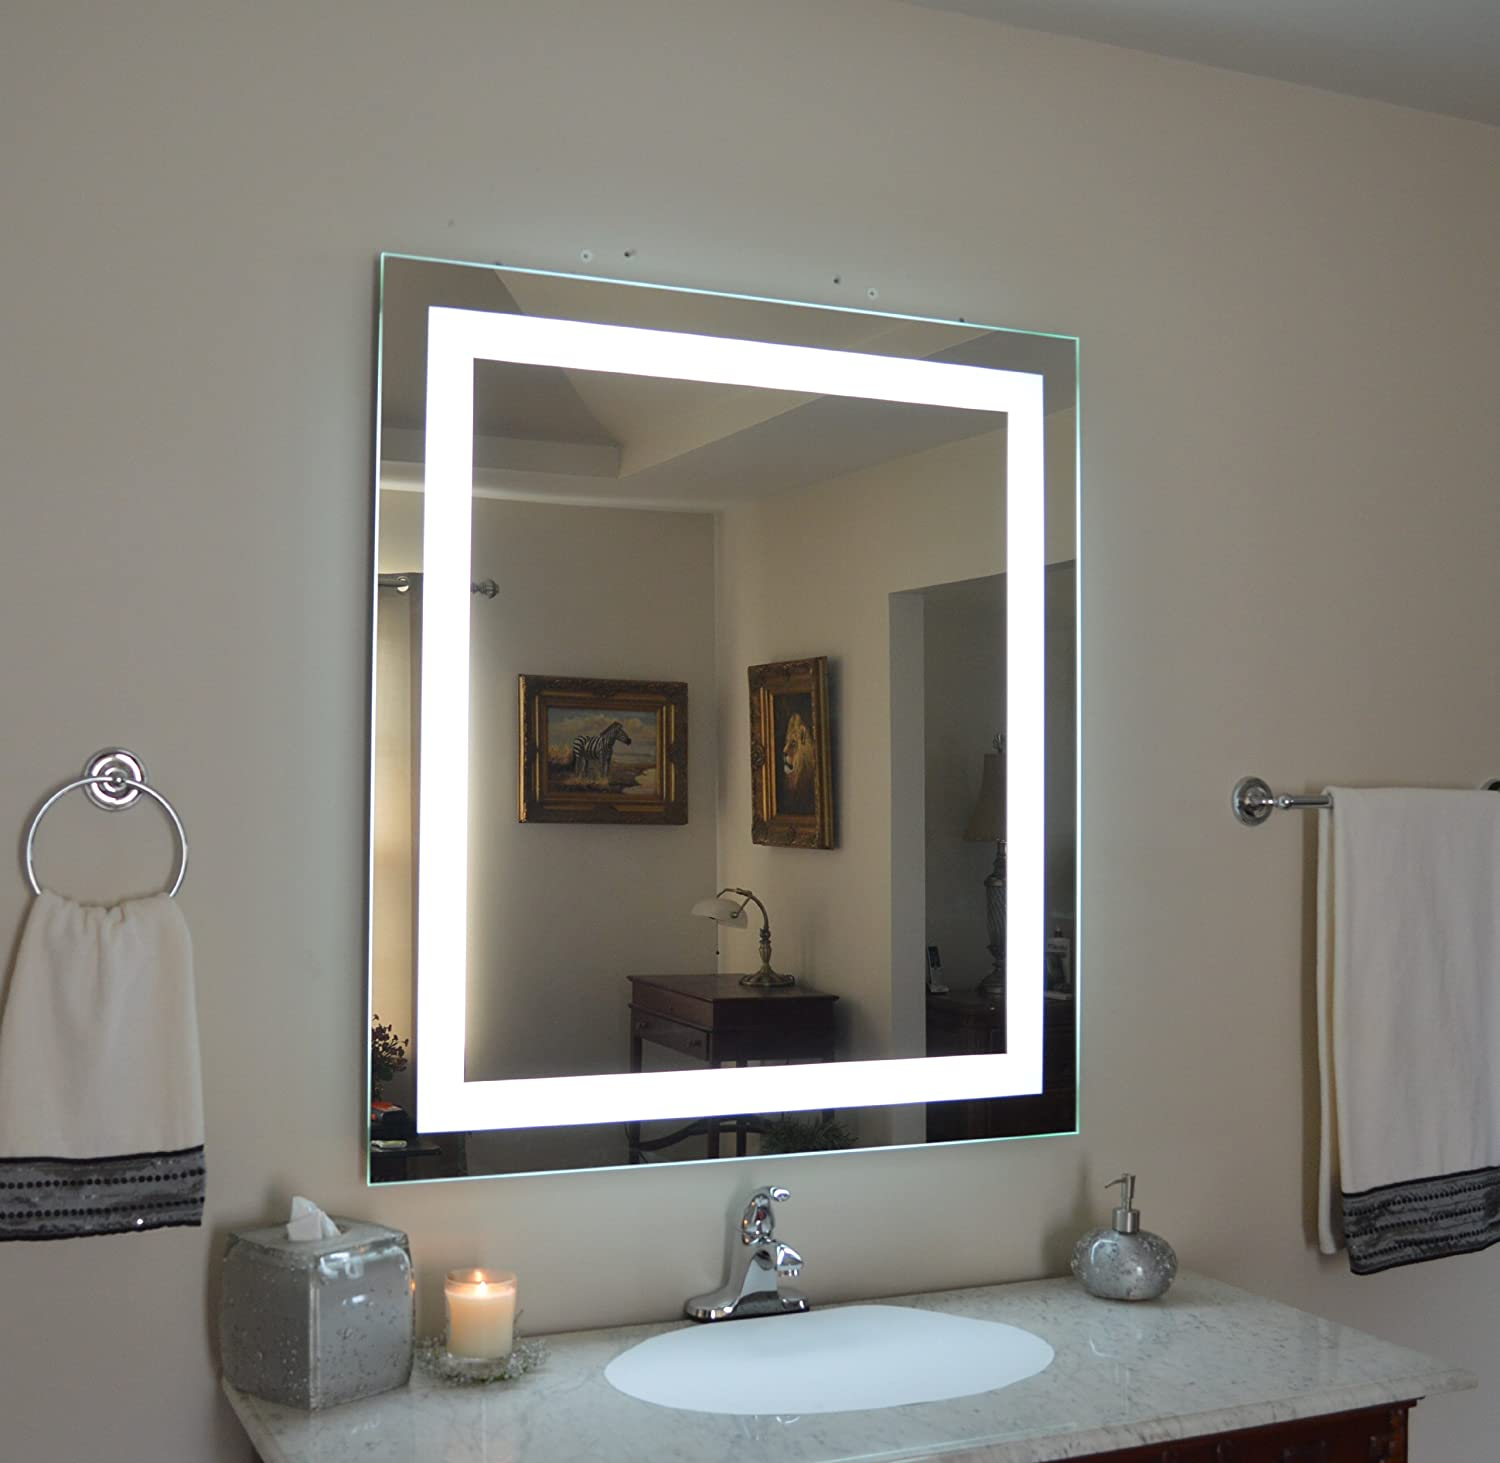 Amazon wall mounted lighted vanity mirror led mam83648 amazon wall mounted lighted vanity mirror led mam83648 commercial grade 36x48 home kitchen aloadofball Choice Image